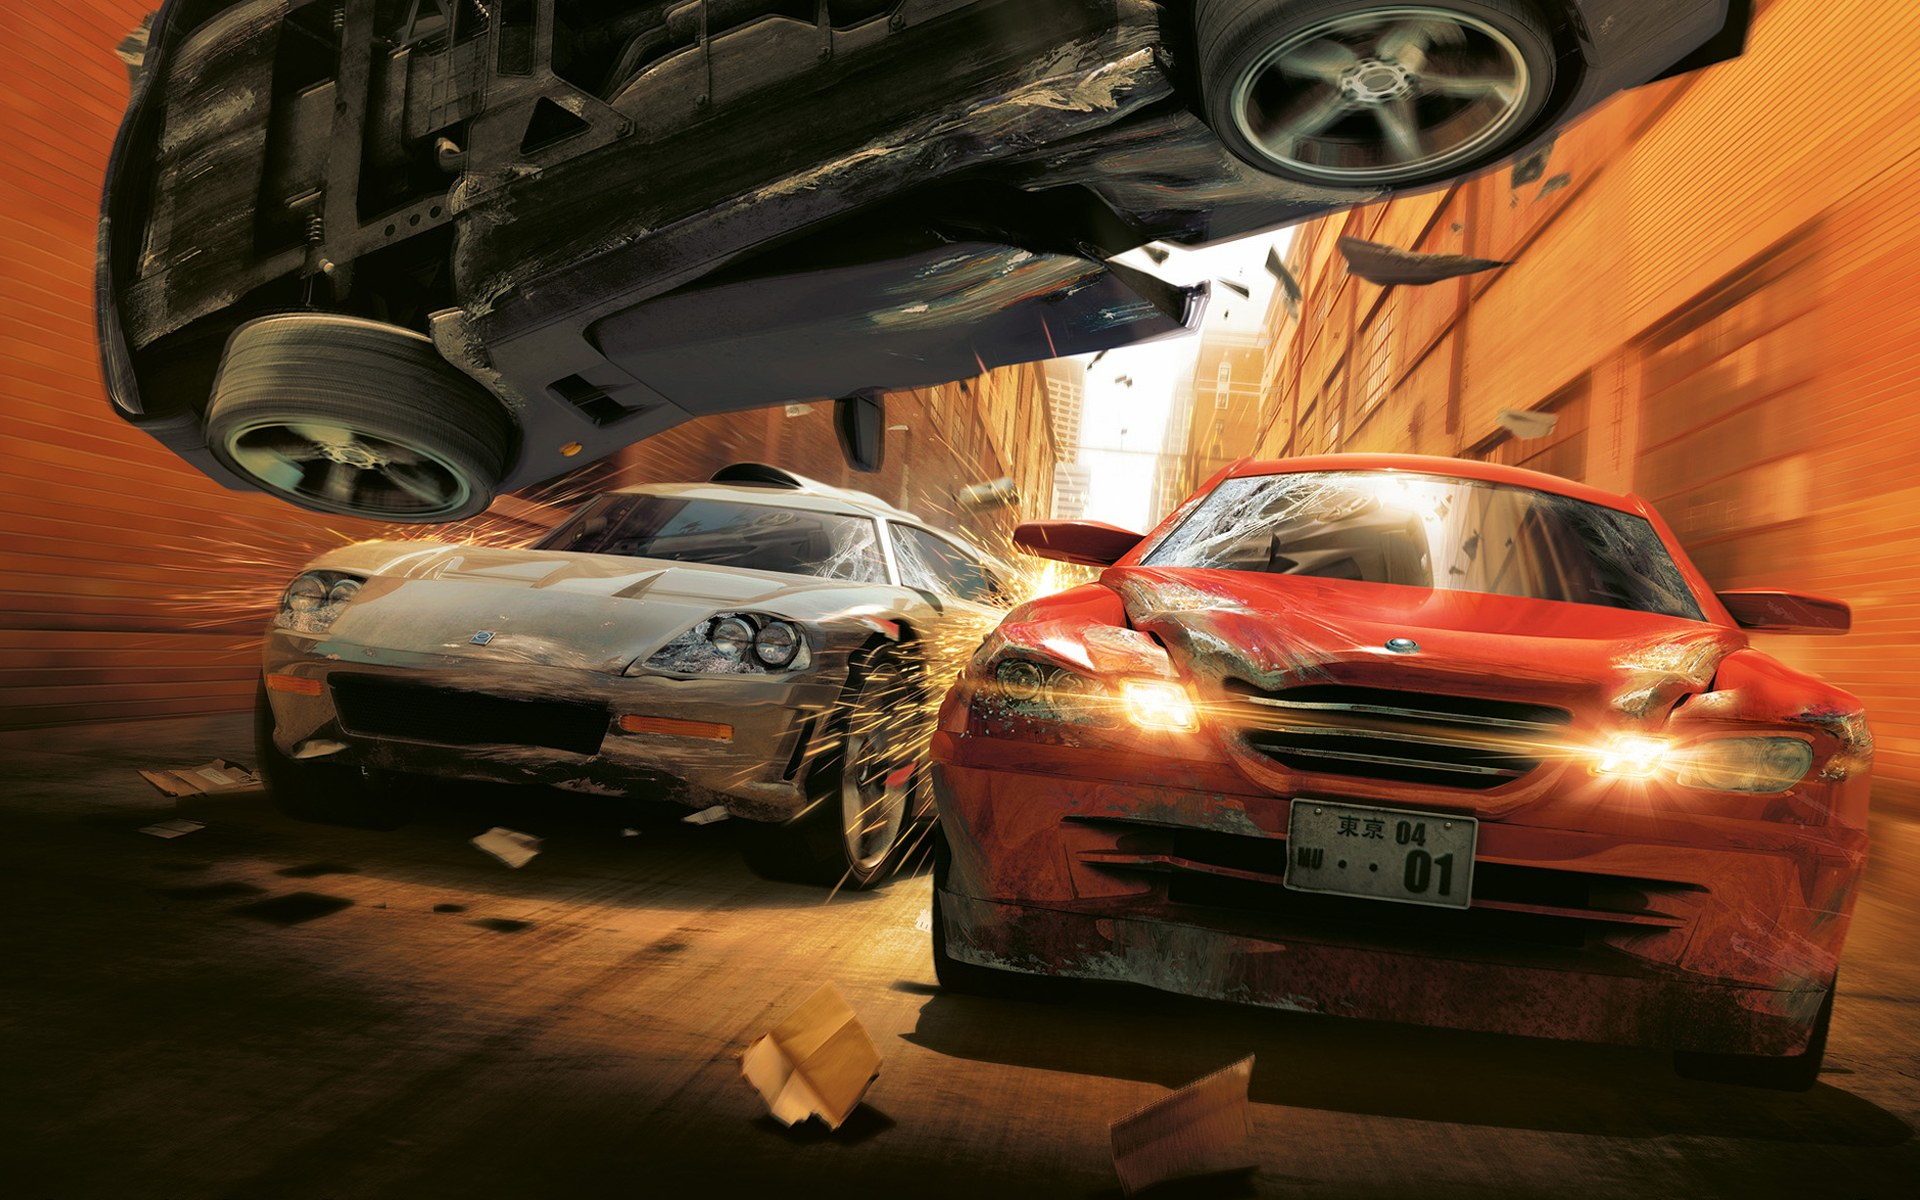 Cool Race Car Wallpapers From Car Race Games 1920x1200 No